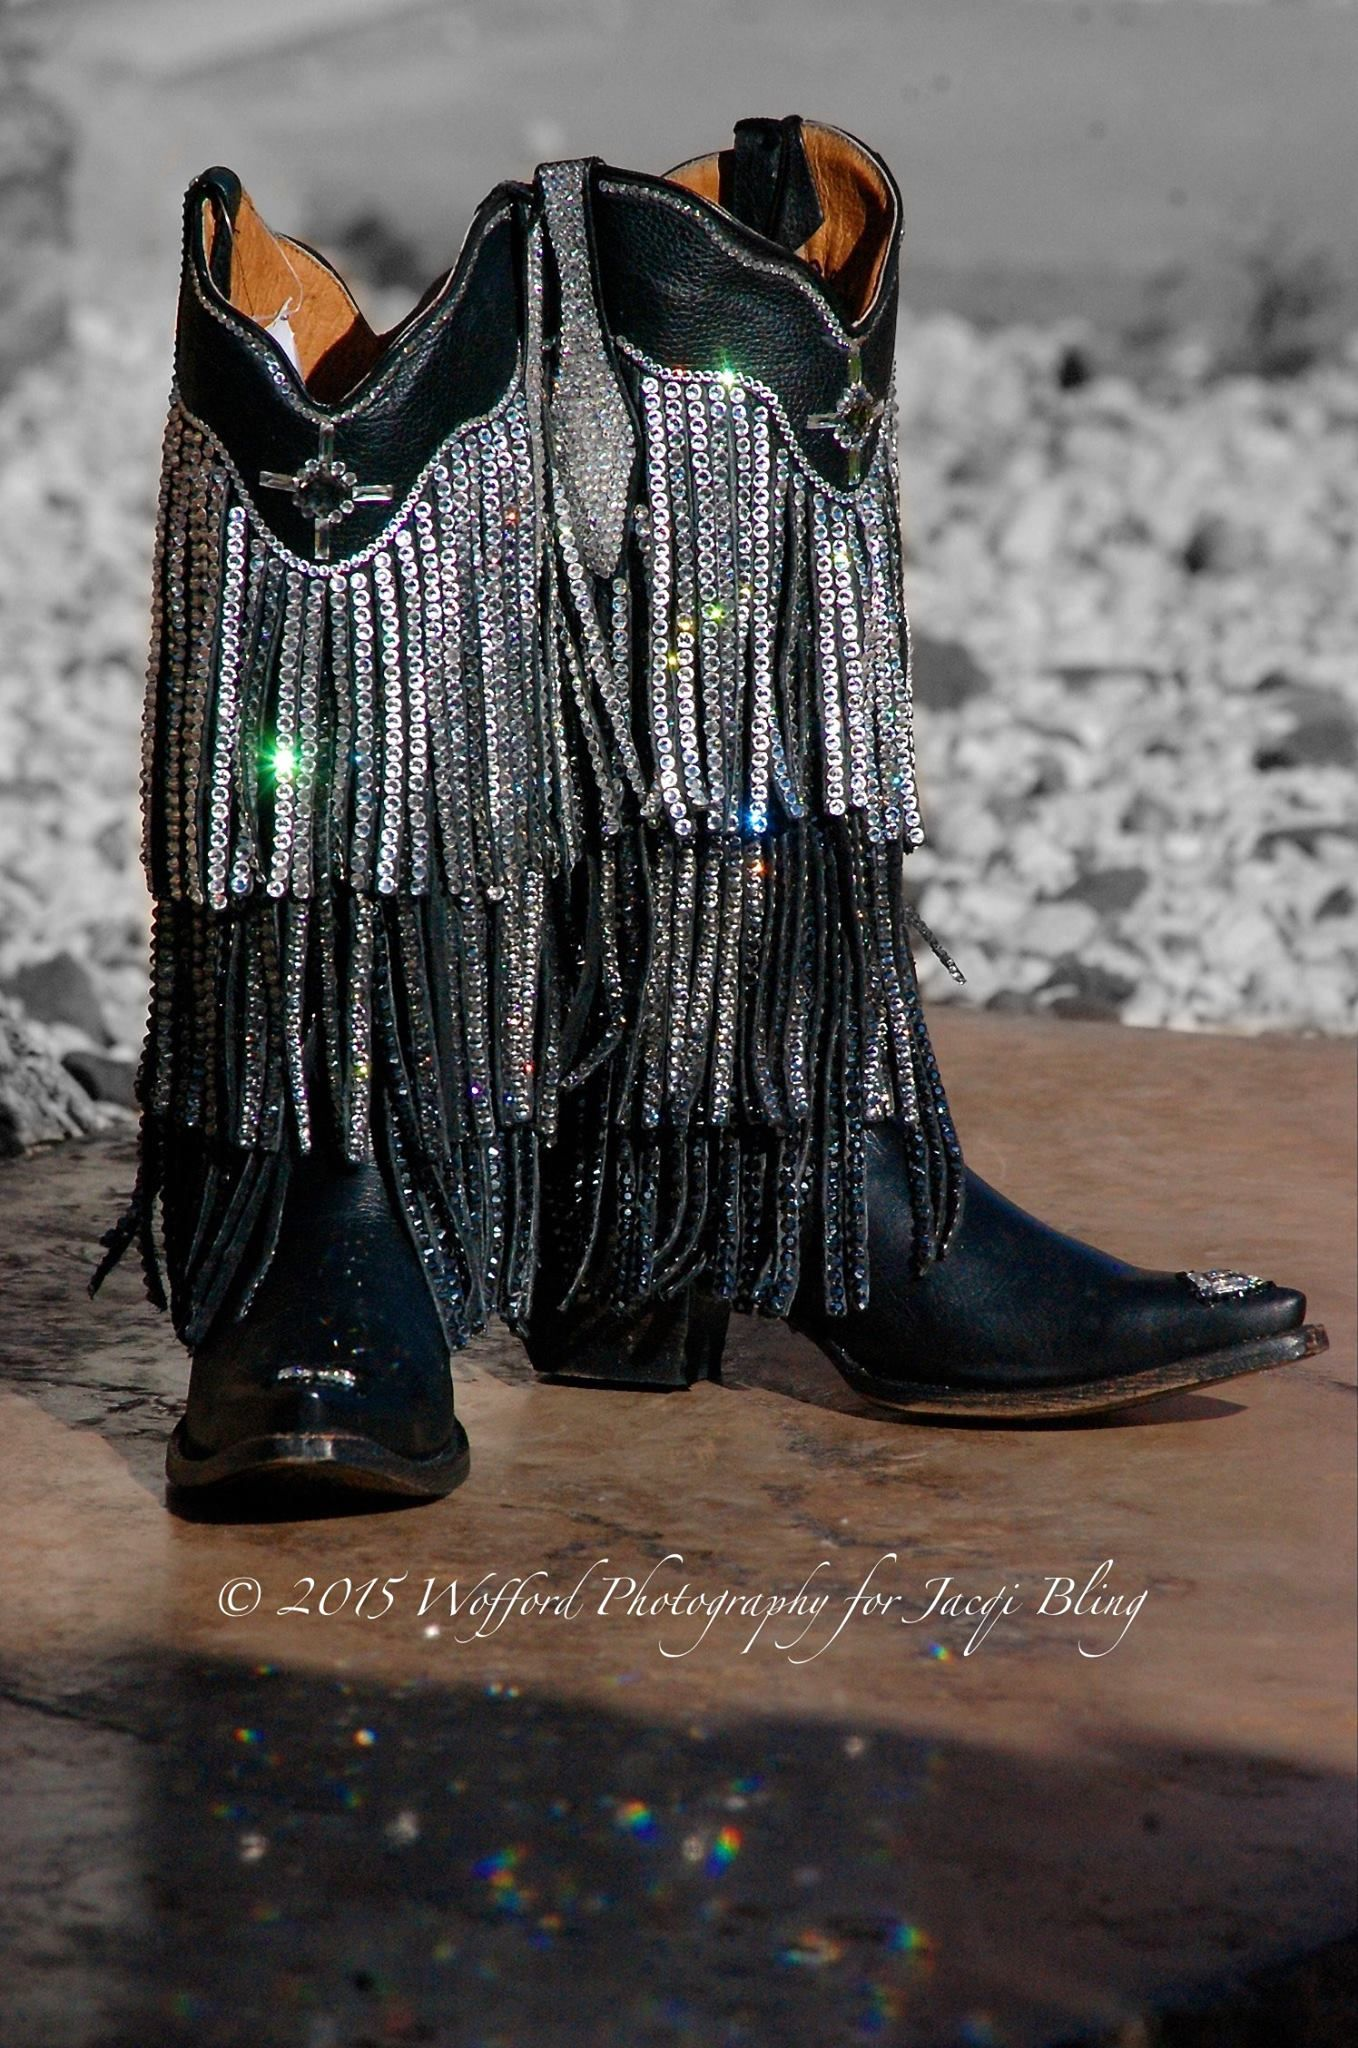 Jacqi Bling Swarovski Cowgirl Boots My Style Cowgirl